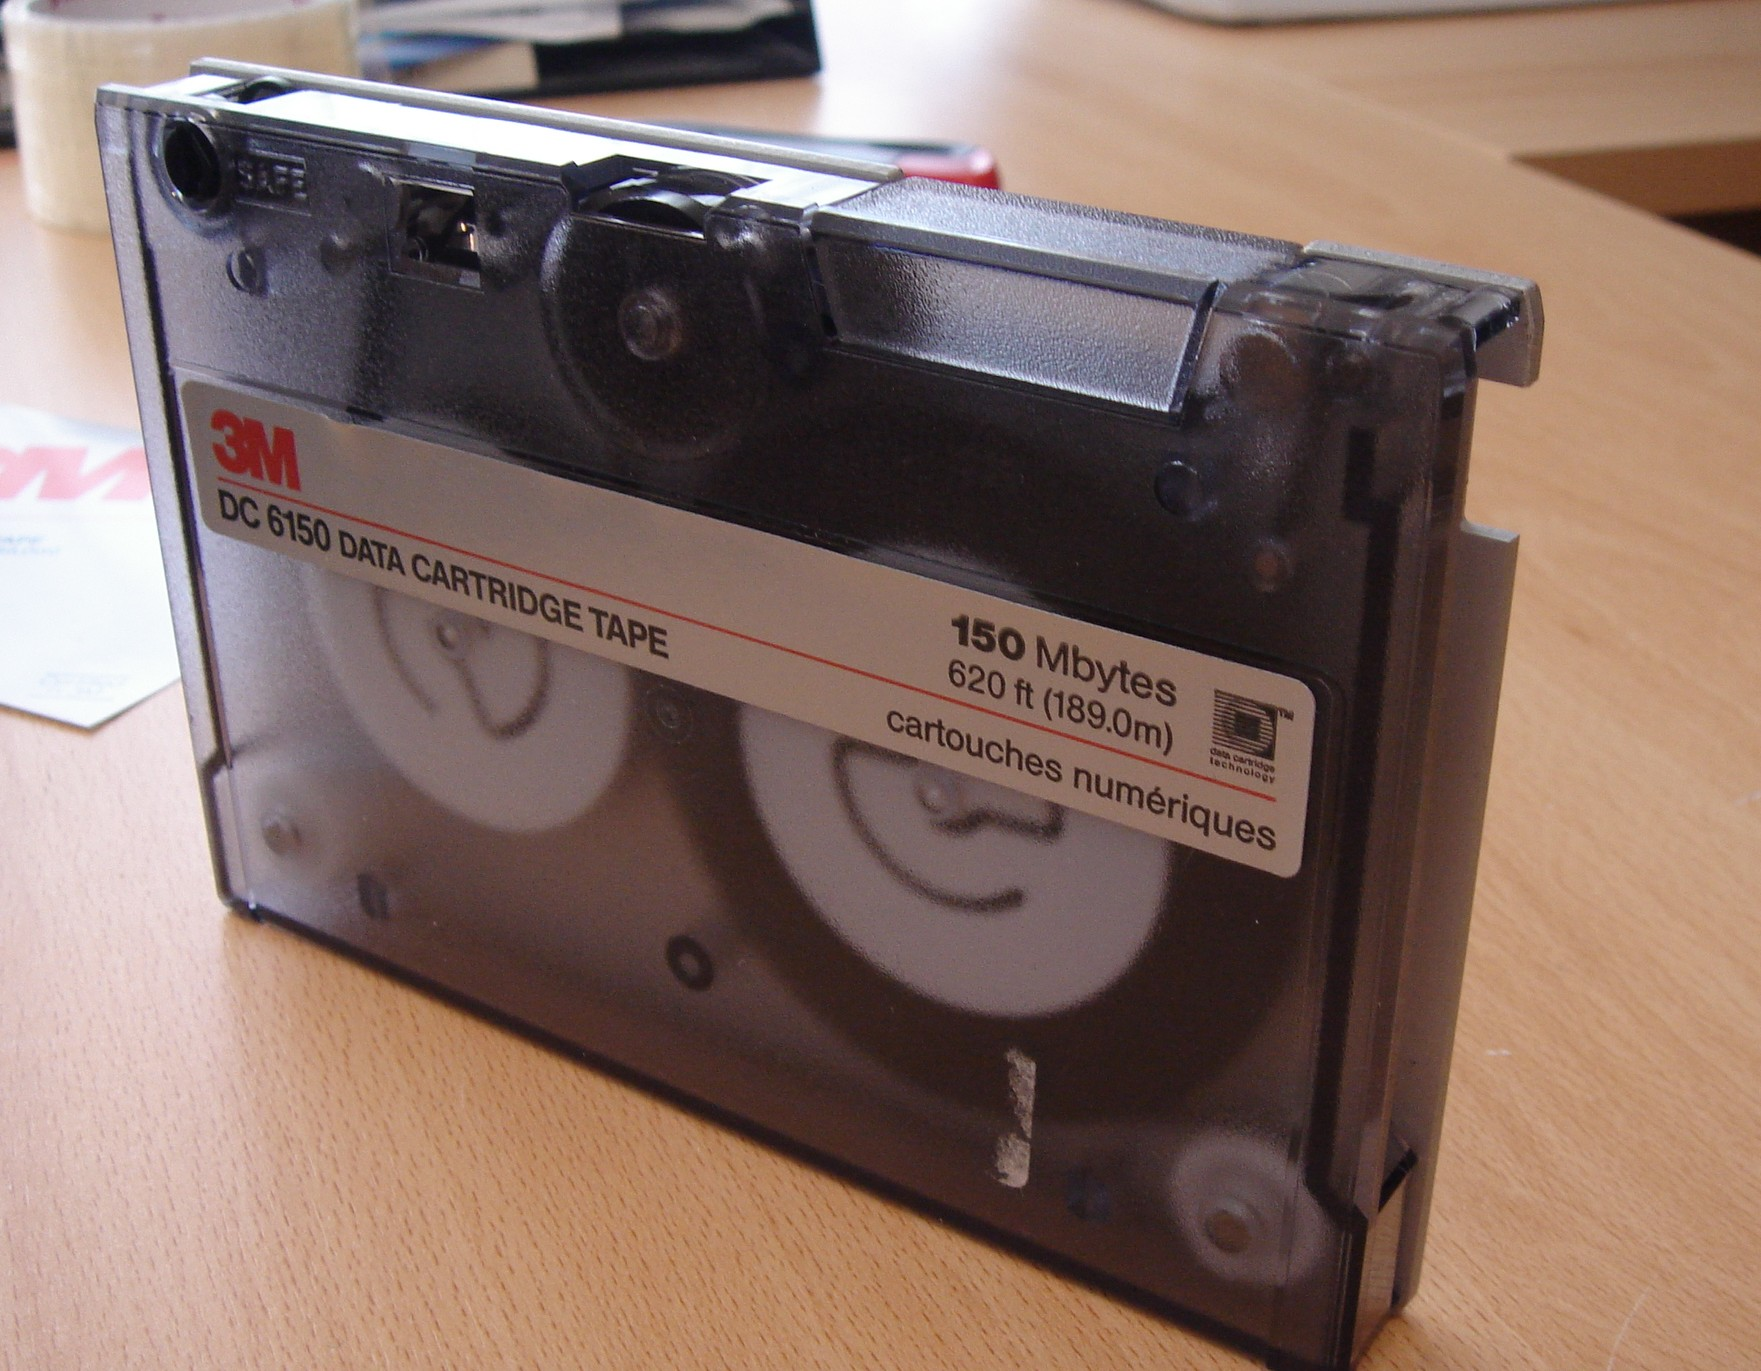 A single tape data cartridge by 3M. This particular model isa DC 6150 150Mbytes labelled cartouche numeriques 620ft long or 189.0m. It was made using windows backup software.